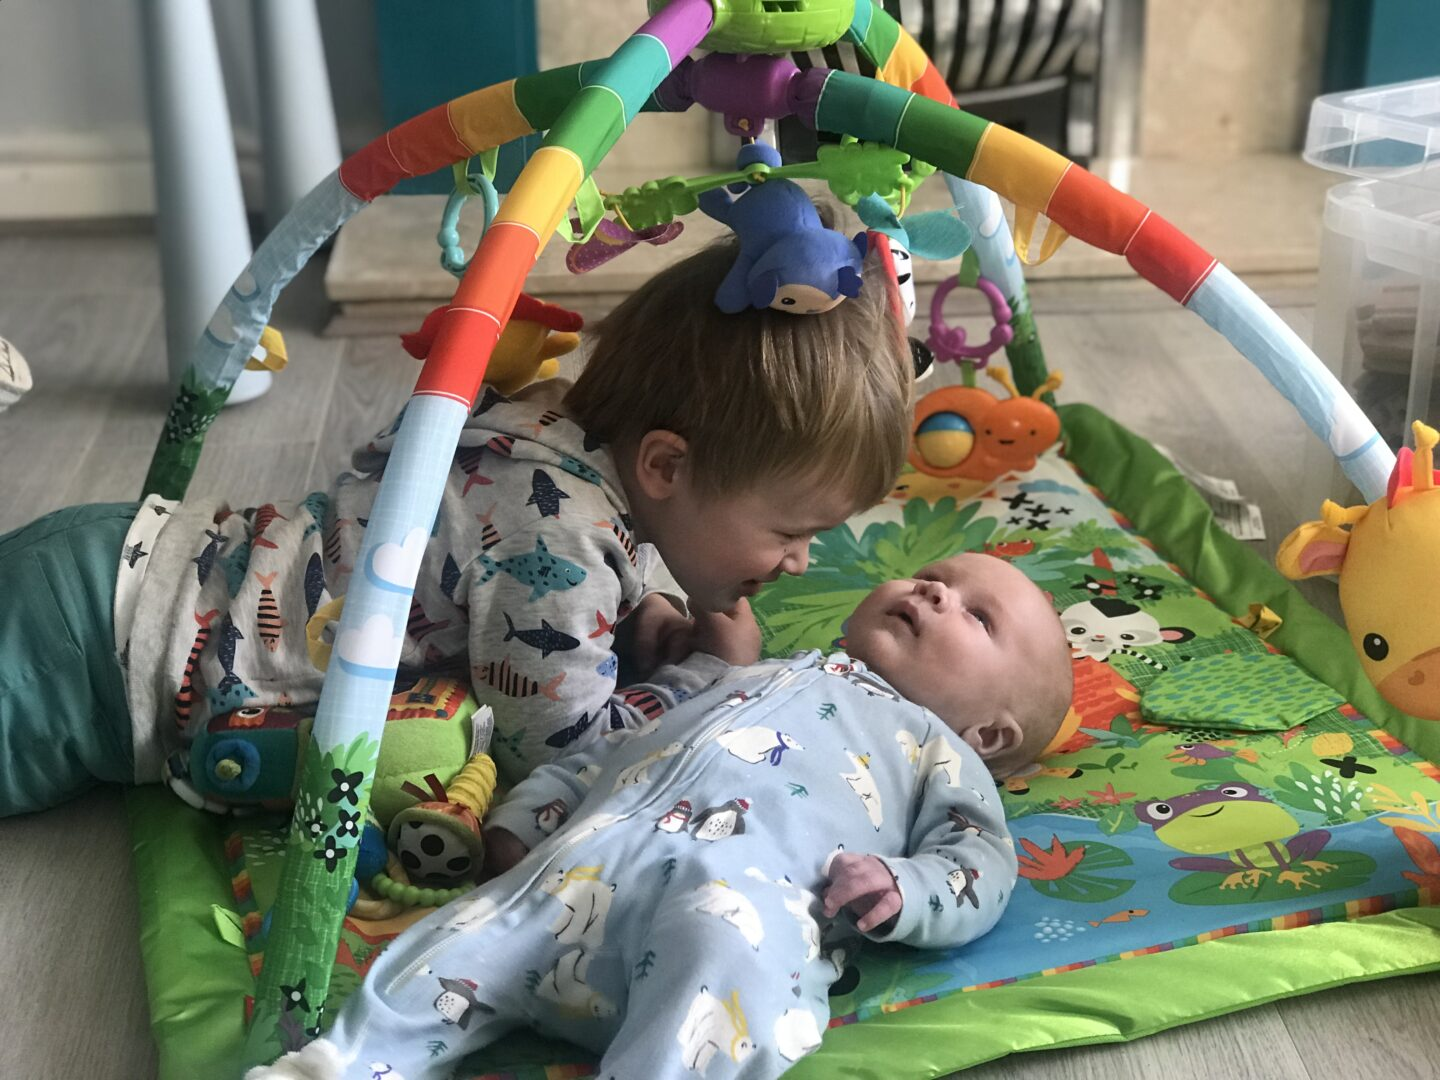 Felix lying on the playmat looking at a toy with his brother Dexter looking at him